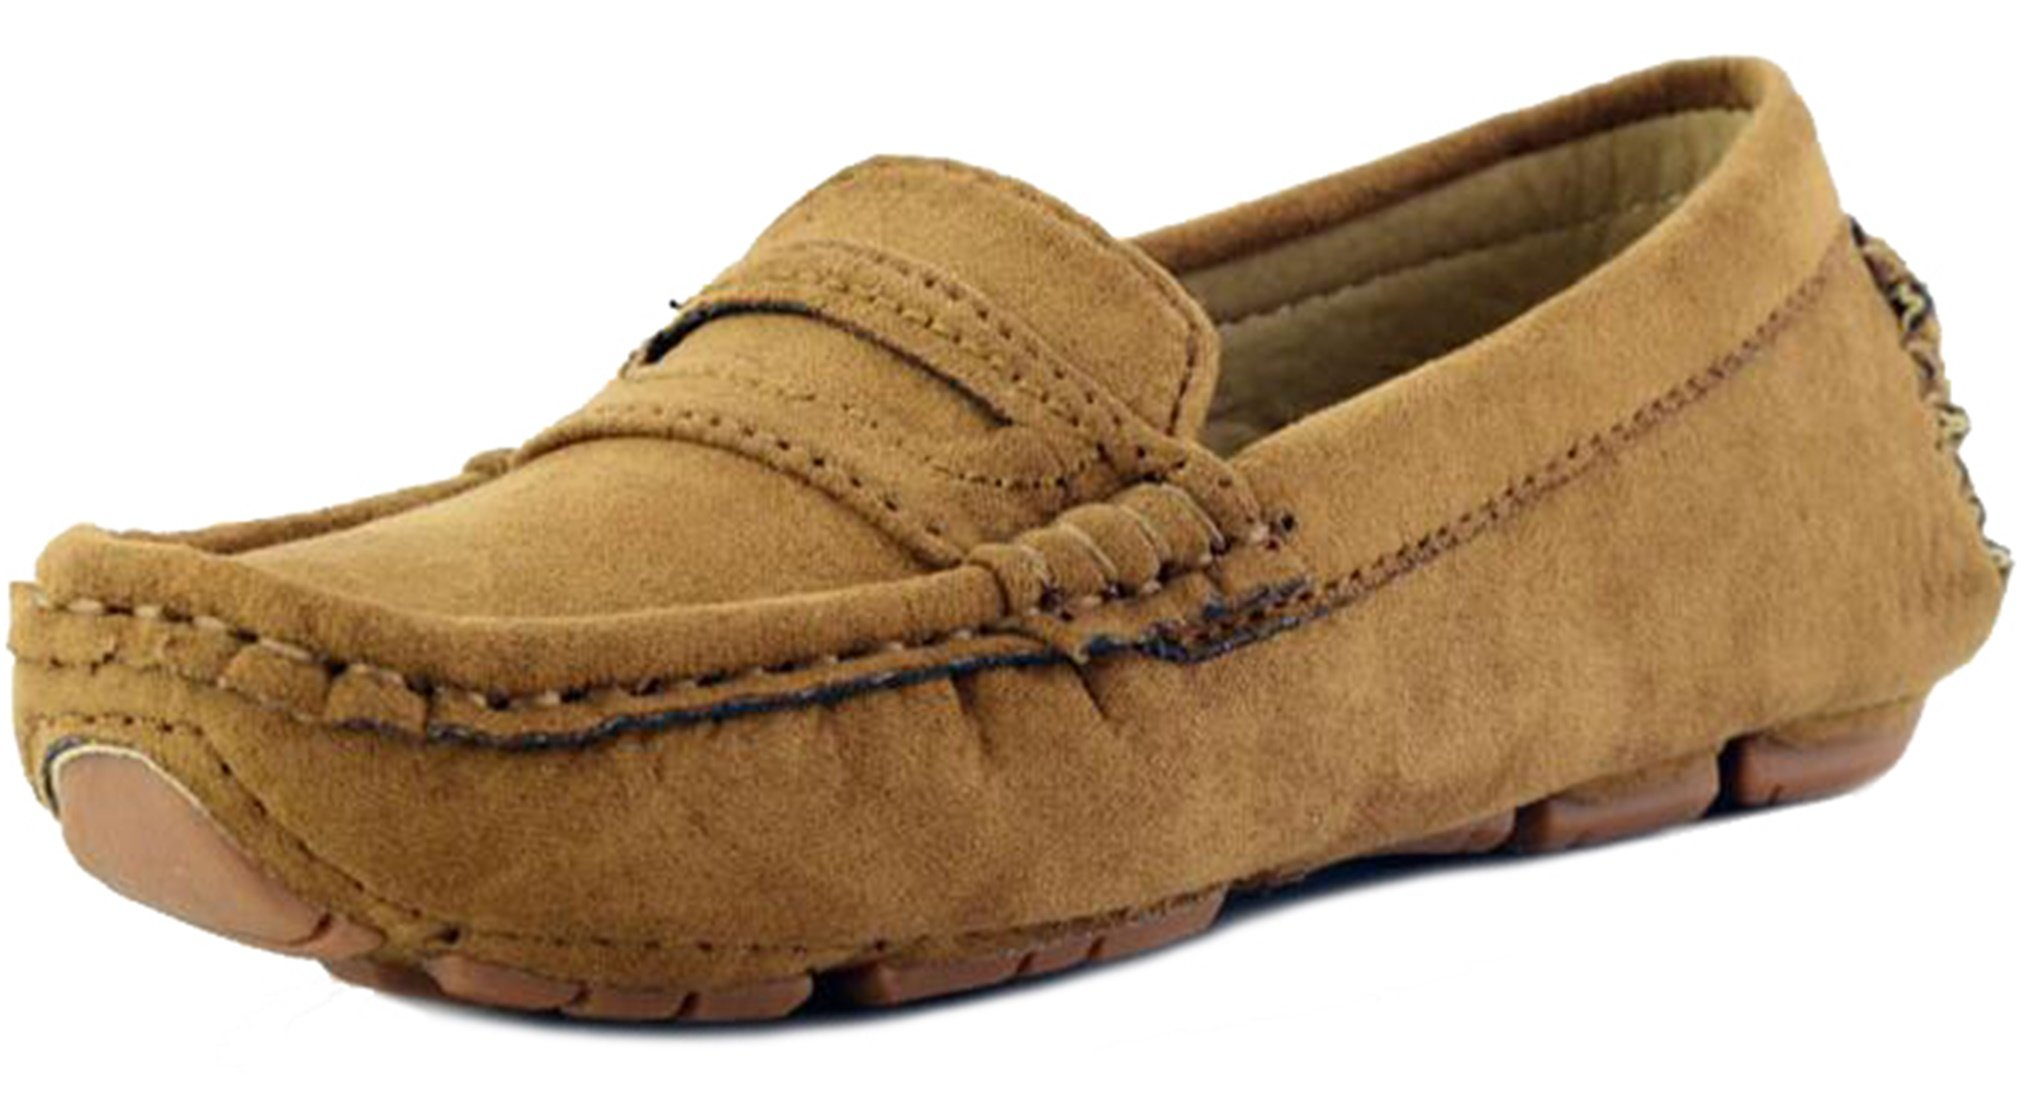 PPXID Girl's Boy's Suede Slip-on Loafers Shoes(Toddler/Little Kid/Big Kid)-Brown 12.5 US Size